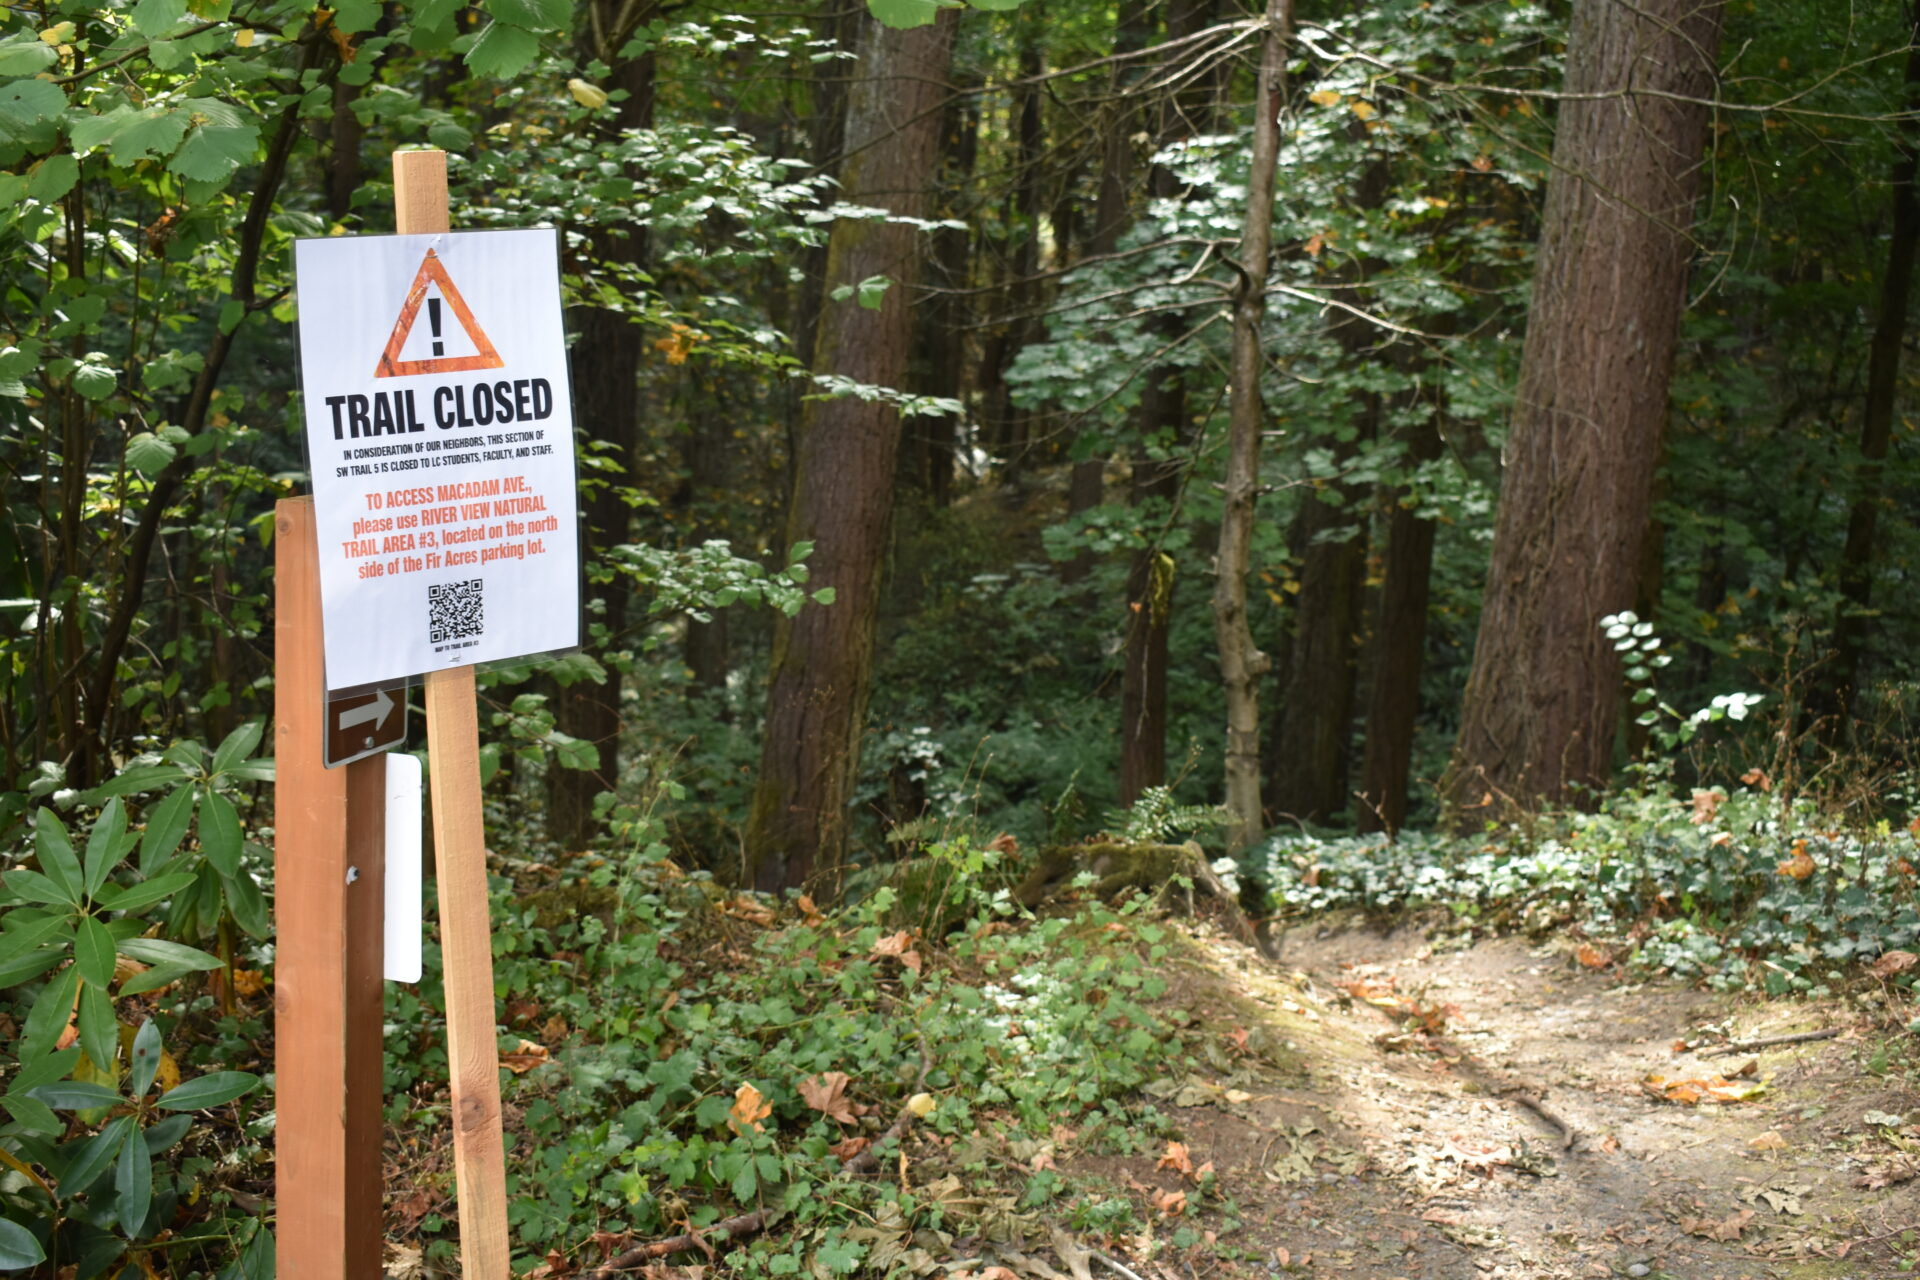 The entrance to SW Trail #5 by the rose garden has a sign that announces it is closed to LC students, staff and faculty.